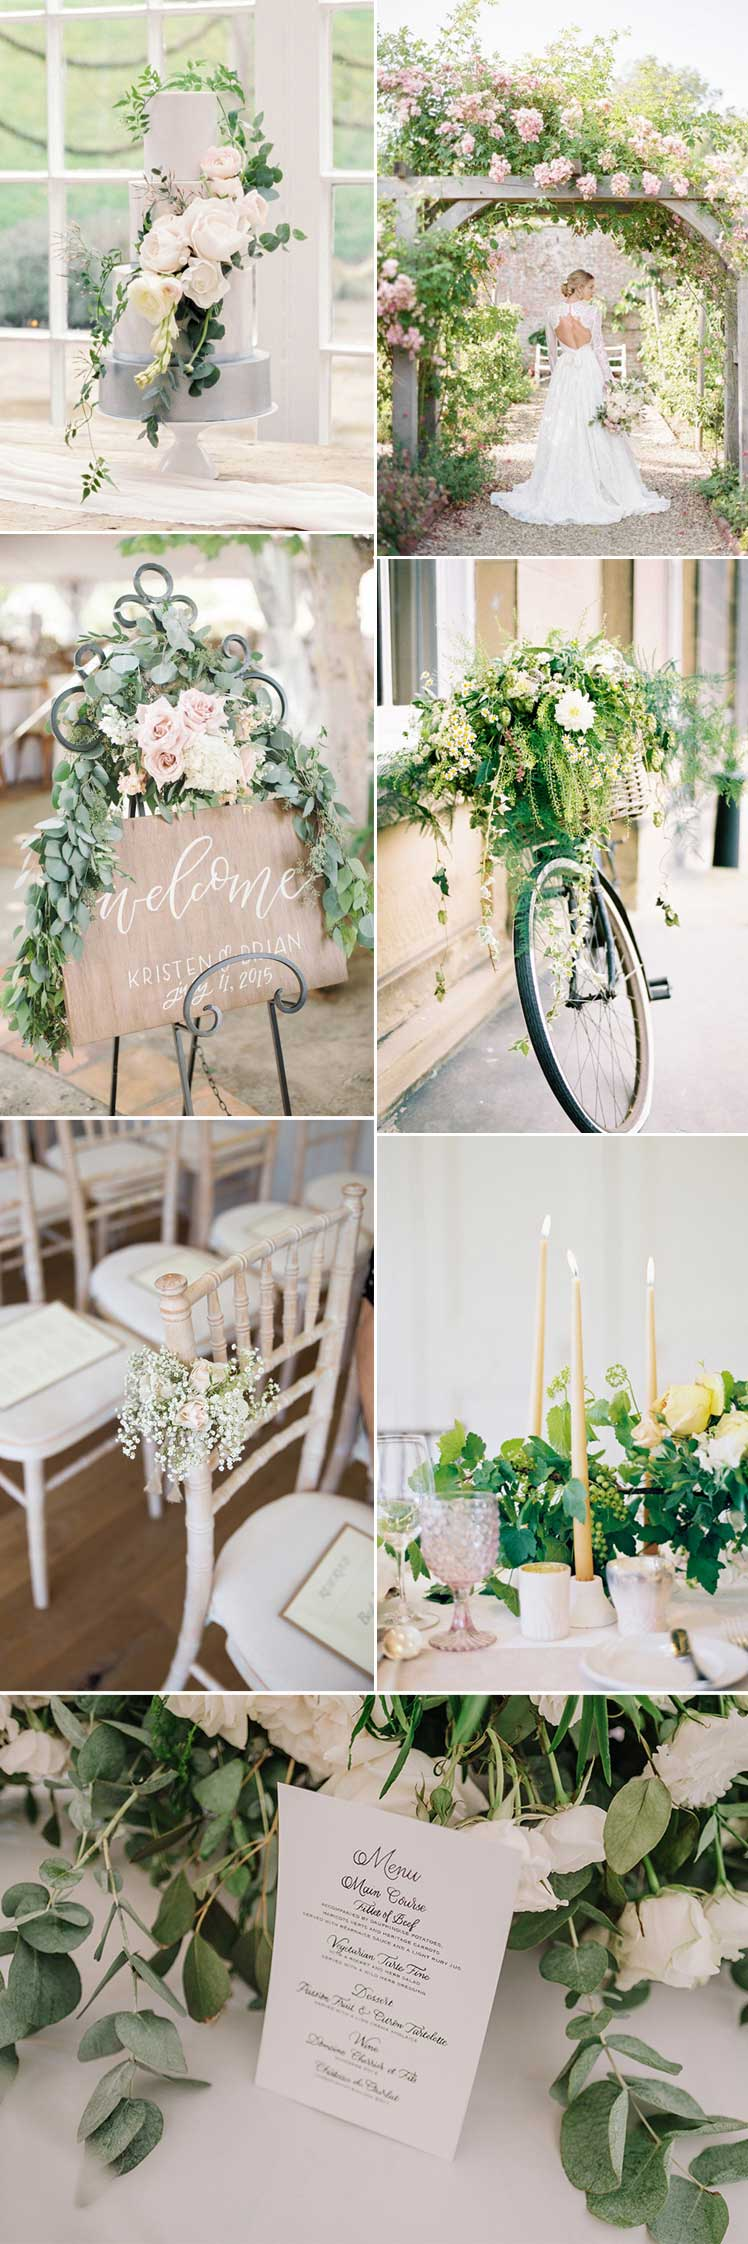 beautiful modern country wedding ideas